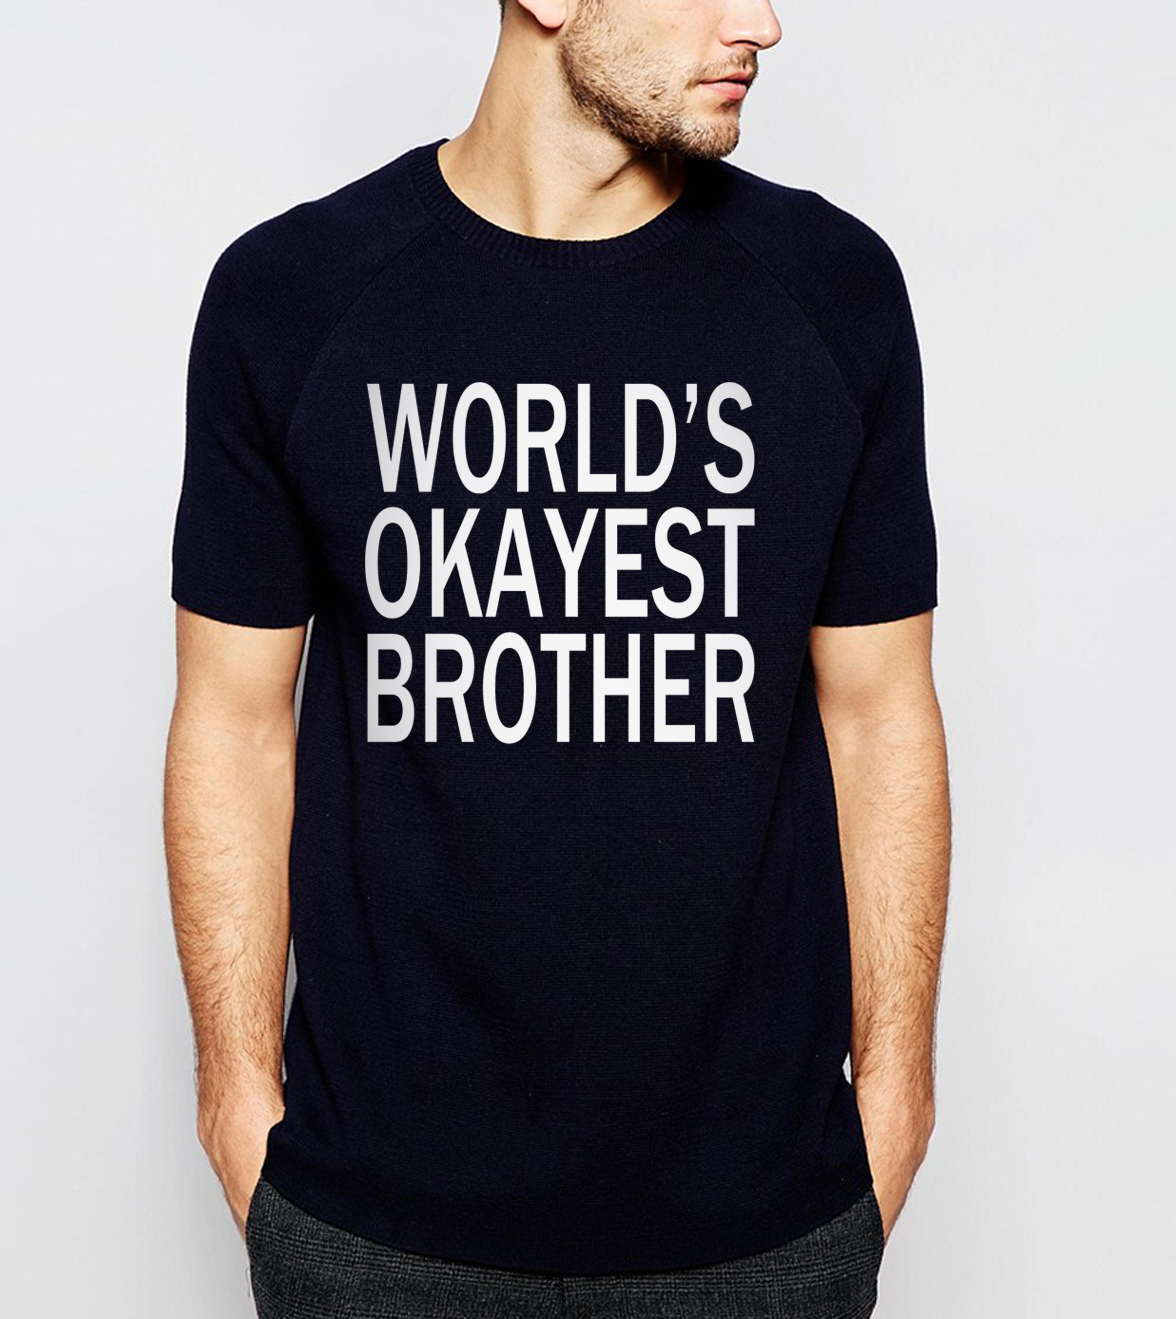 Hot Sale For Brother 2019 Summer New World's Okayest Brother Letters Men T-Shirt Casual 100% Cotton High Quality Loose Tops Tees